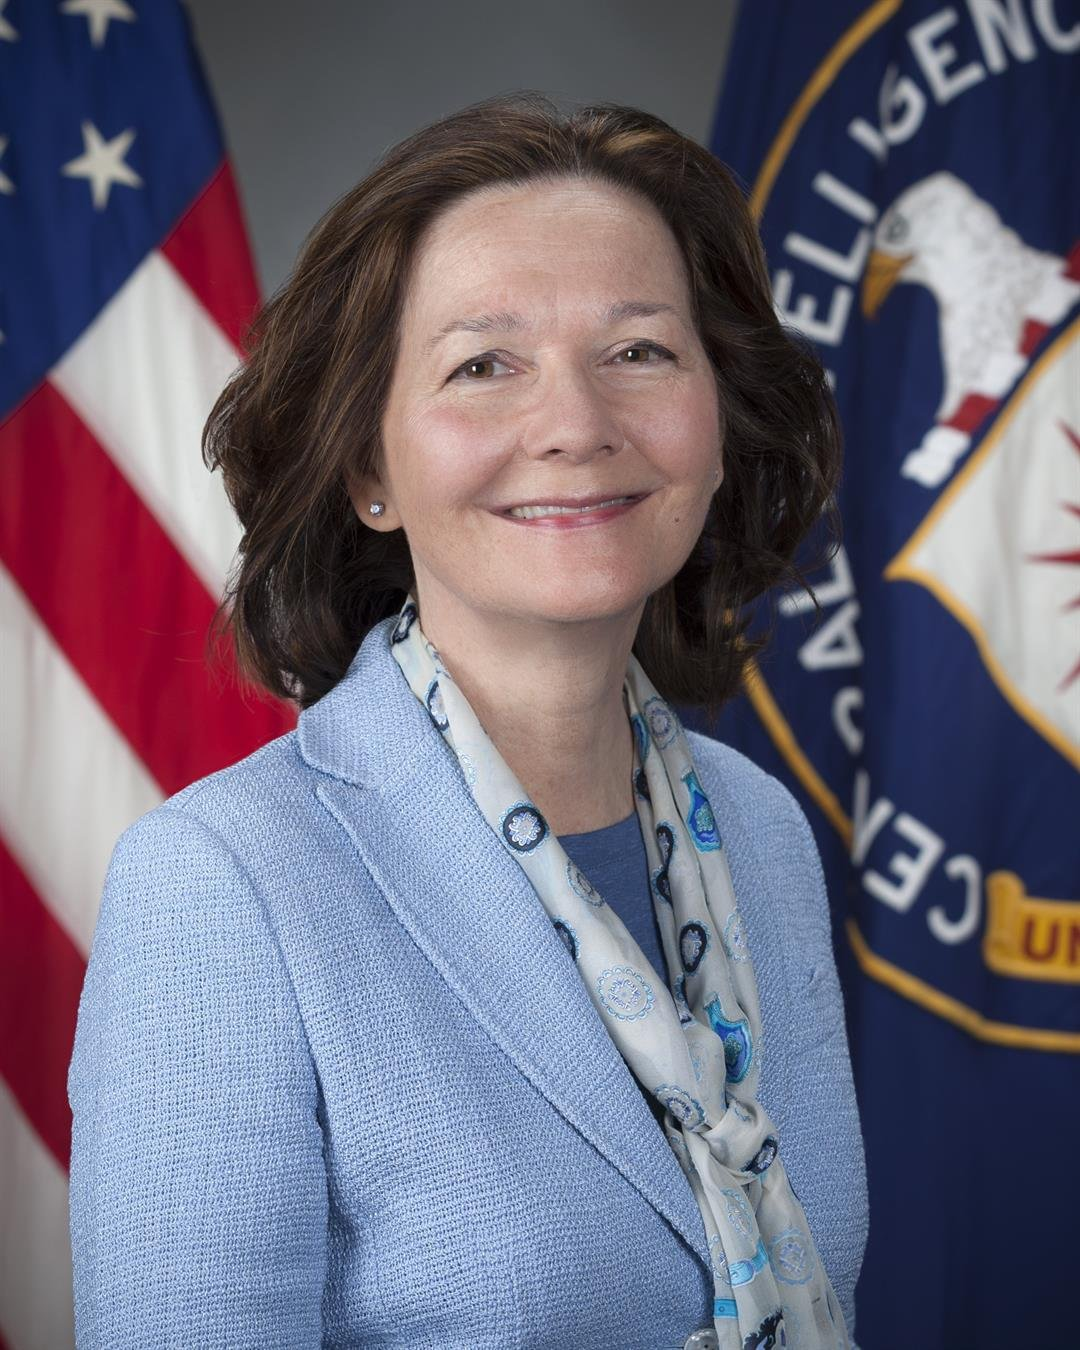 Gina Haspel tried to withdraw his candidacy to head the Central Intelligence Agency